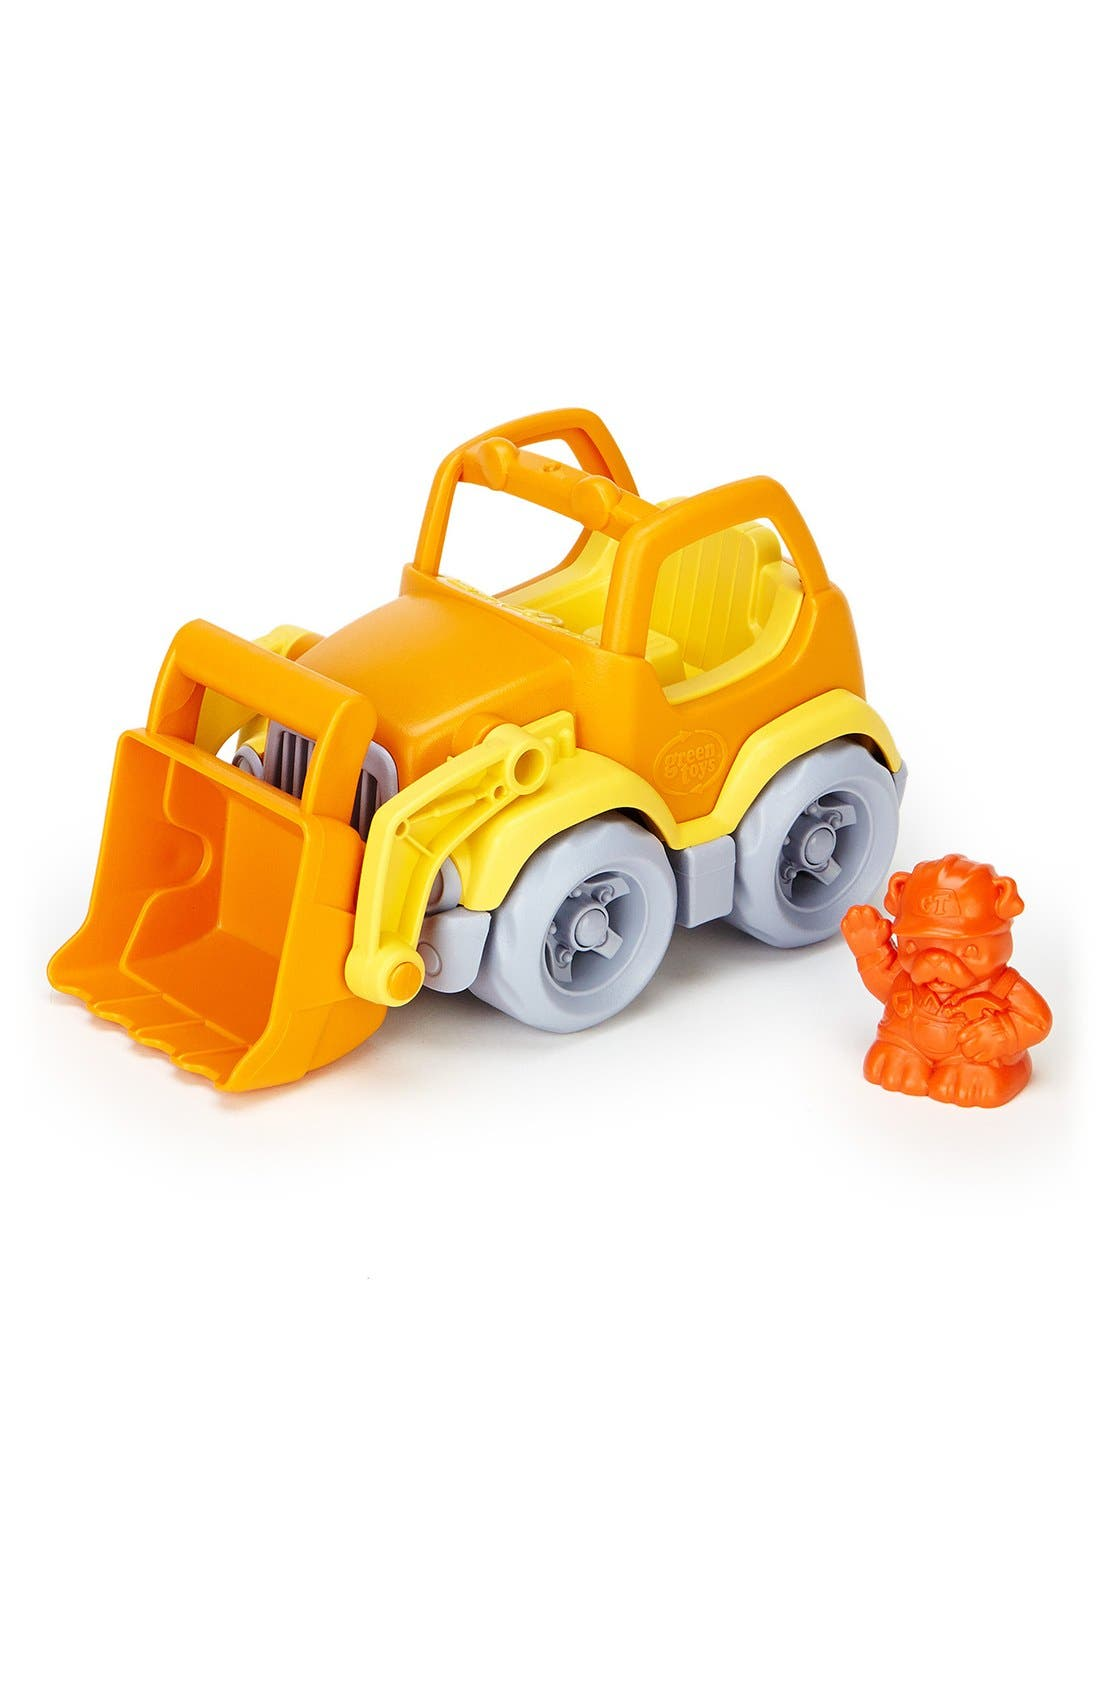 'Scooper' Toy Construction Truck,                             Alternate thumbnail 5, color,                             800